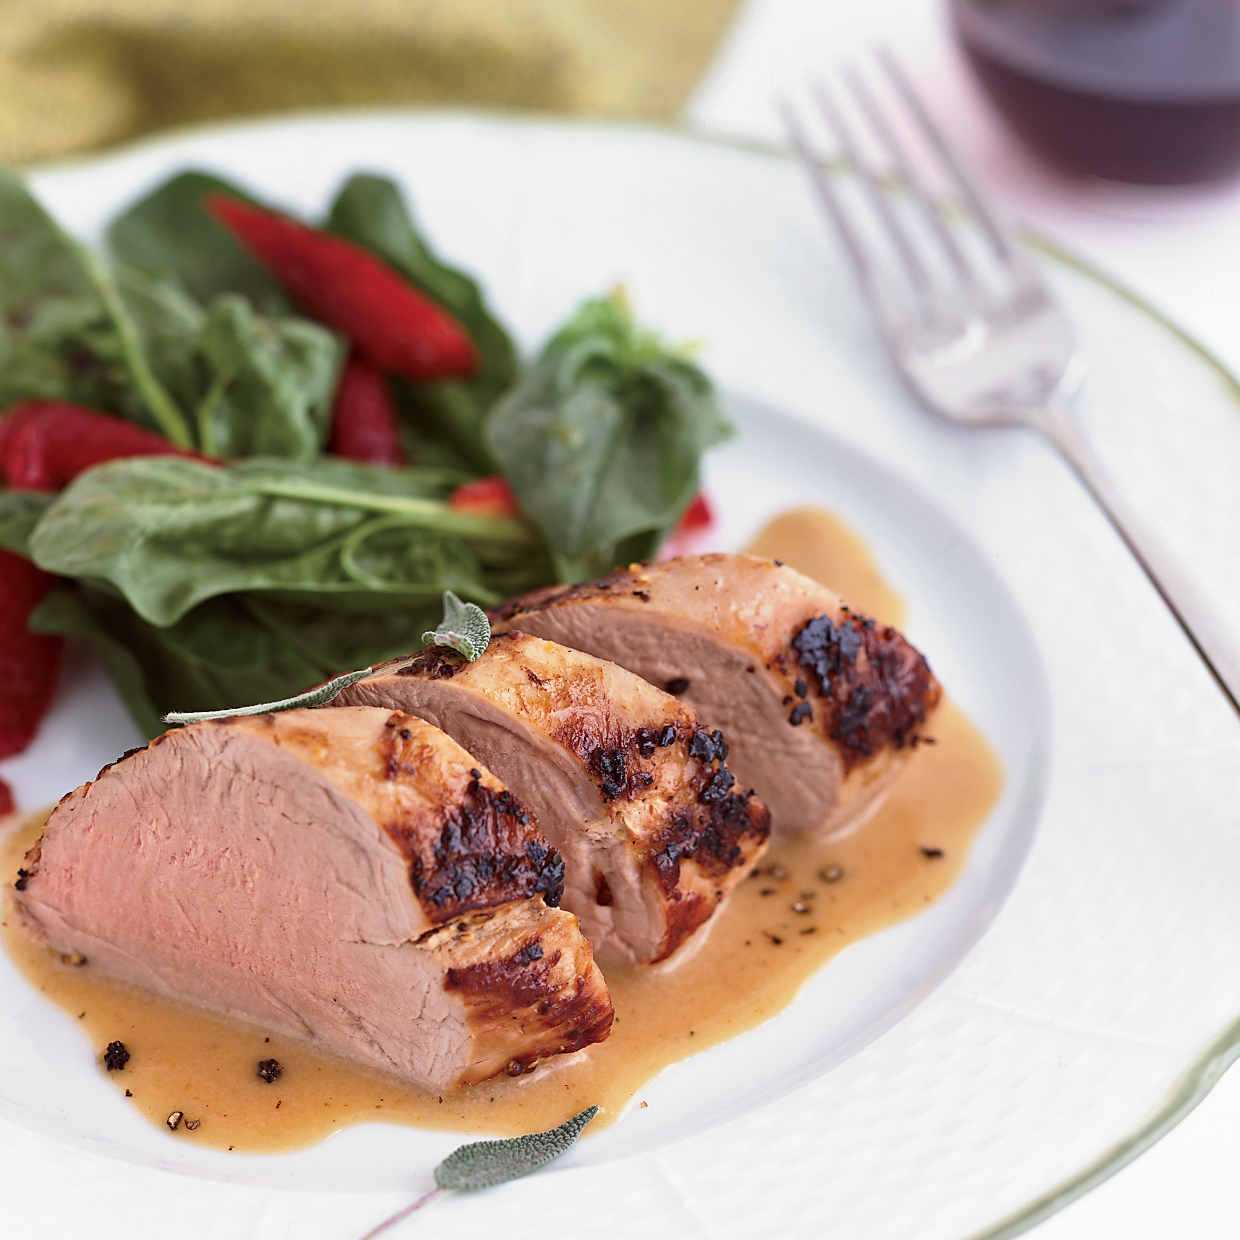 Milk-Braised Pork Tenderloin with Spinach and Strawberry Salad